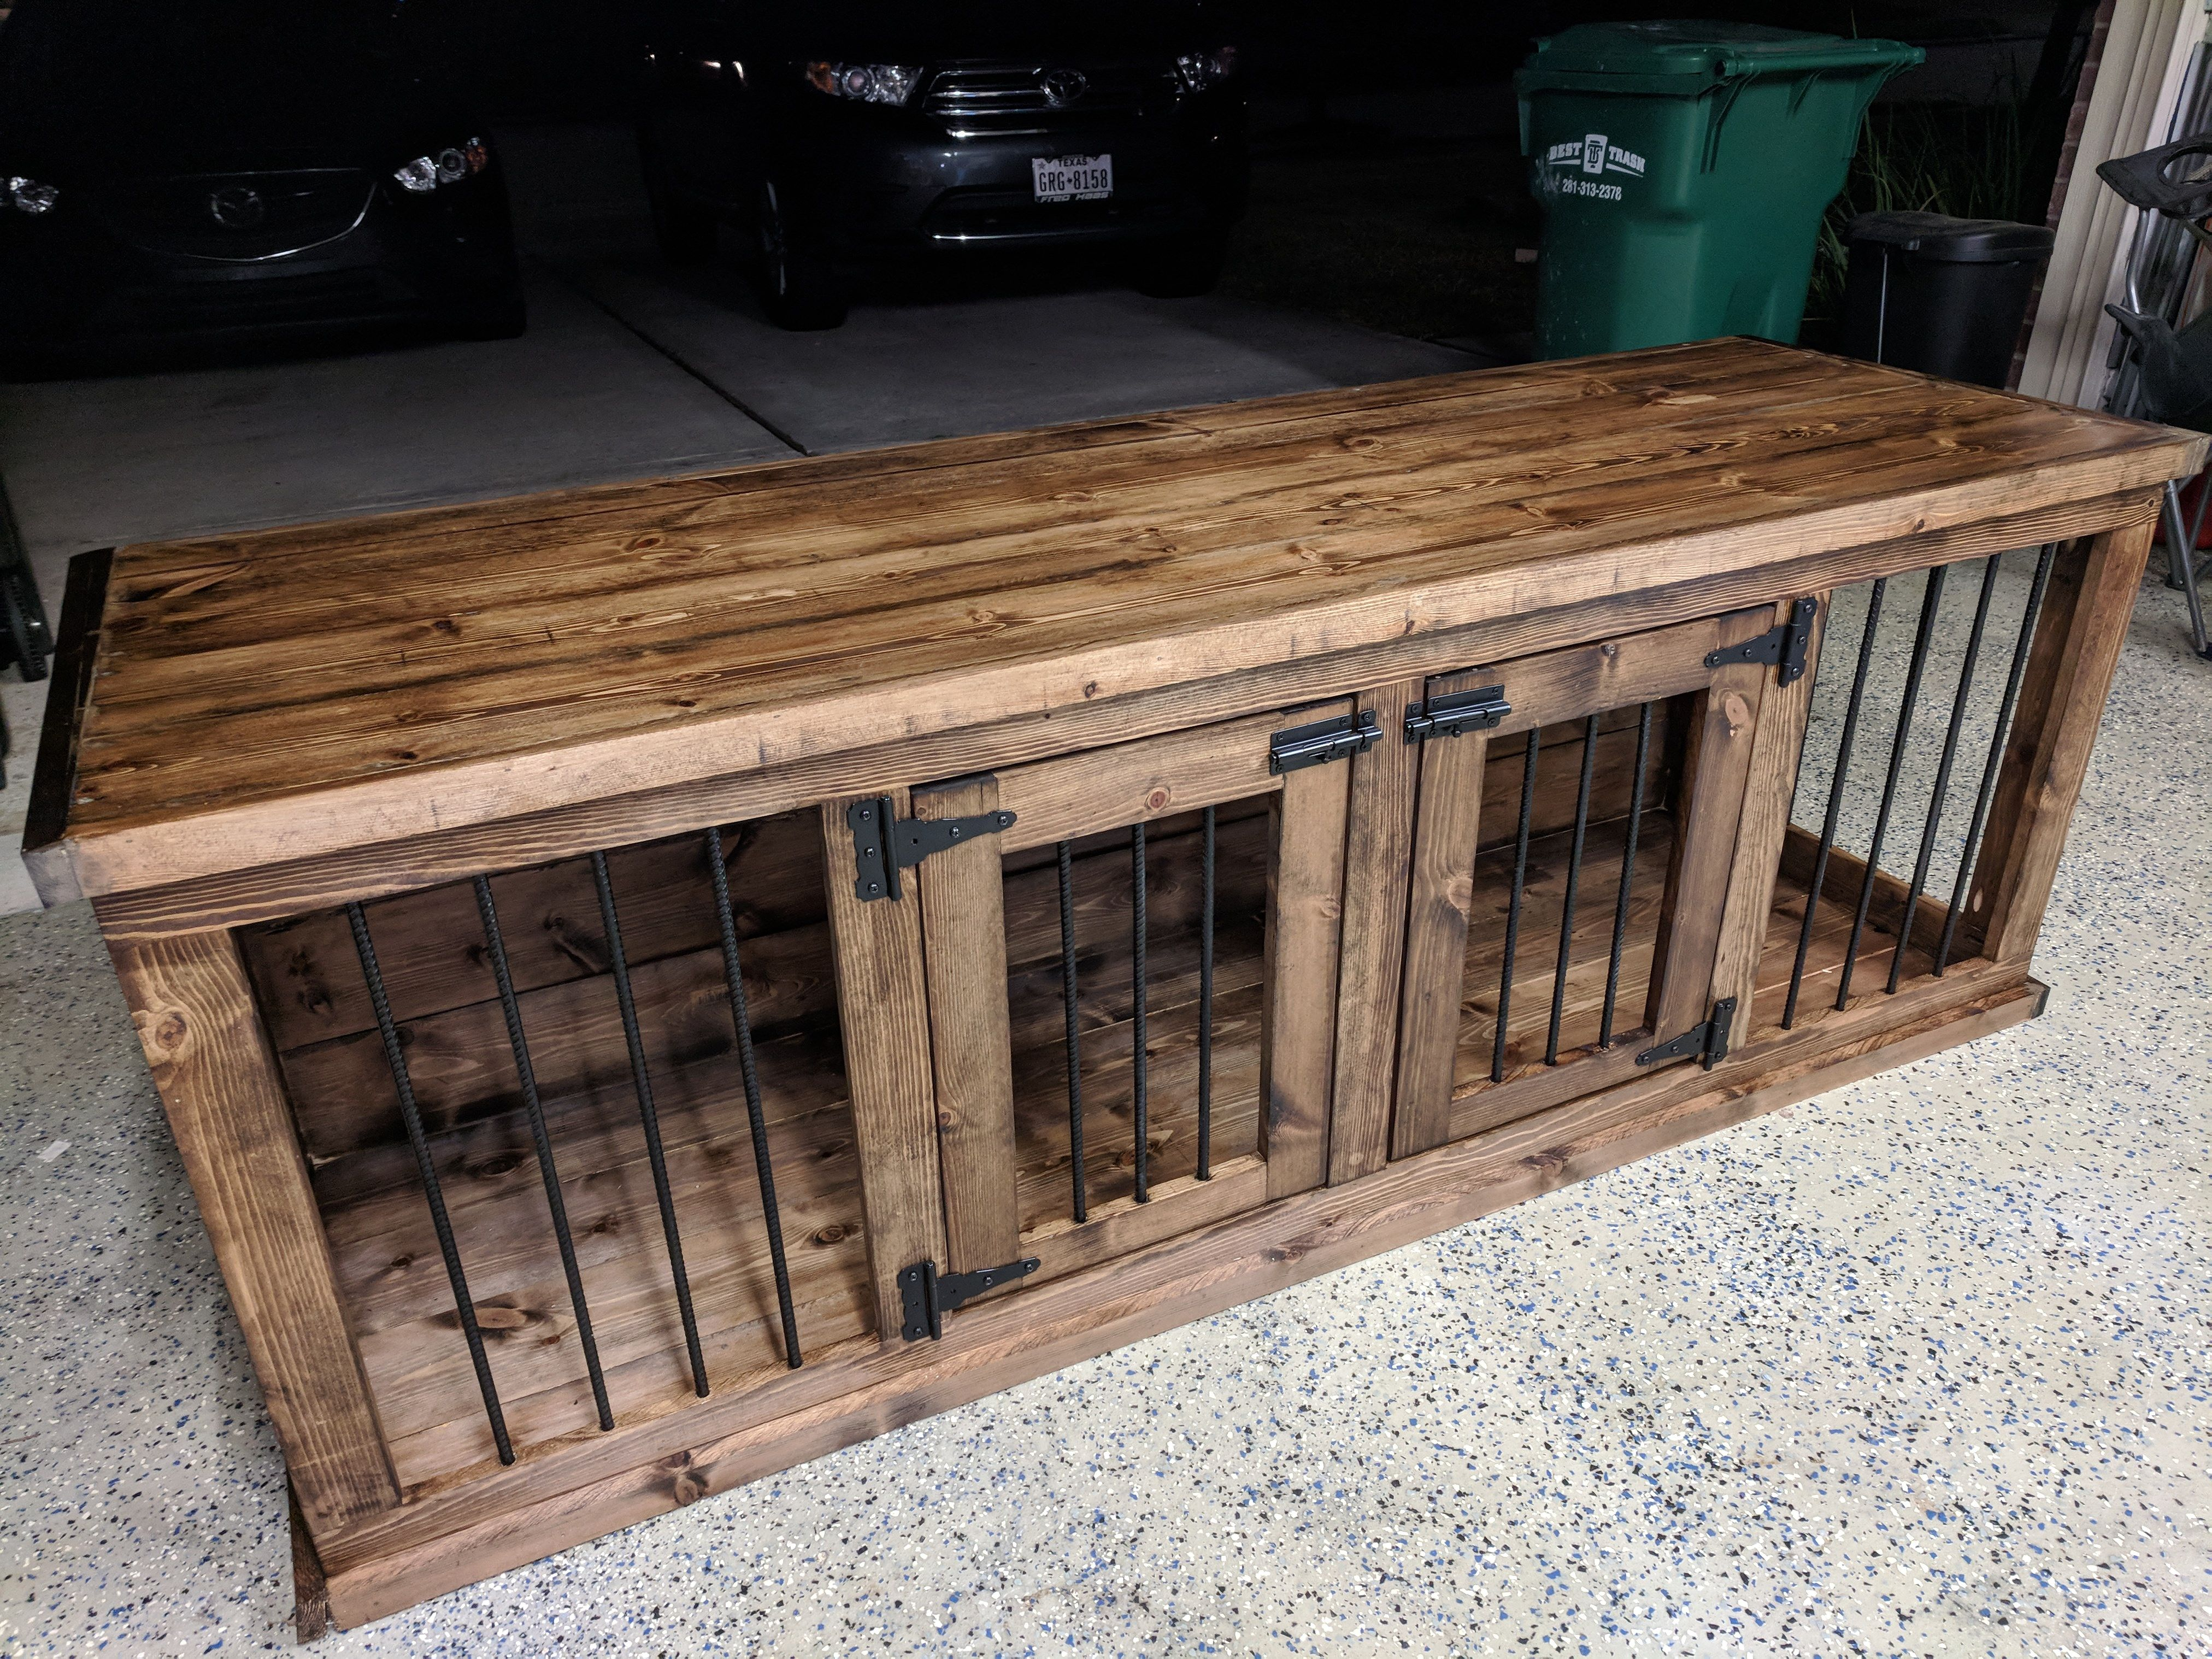 I Made An Double Dog Kennel Out Of Wood And Rebar As A Gift To My Wife Handmade Crafts Ho Dog Kennel Furniture Dog Crate Furniture Dog Kennel Furniture Diy